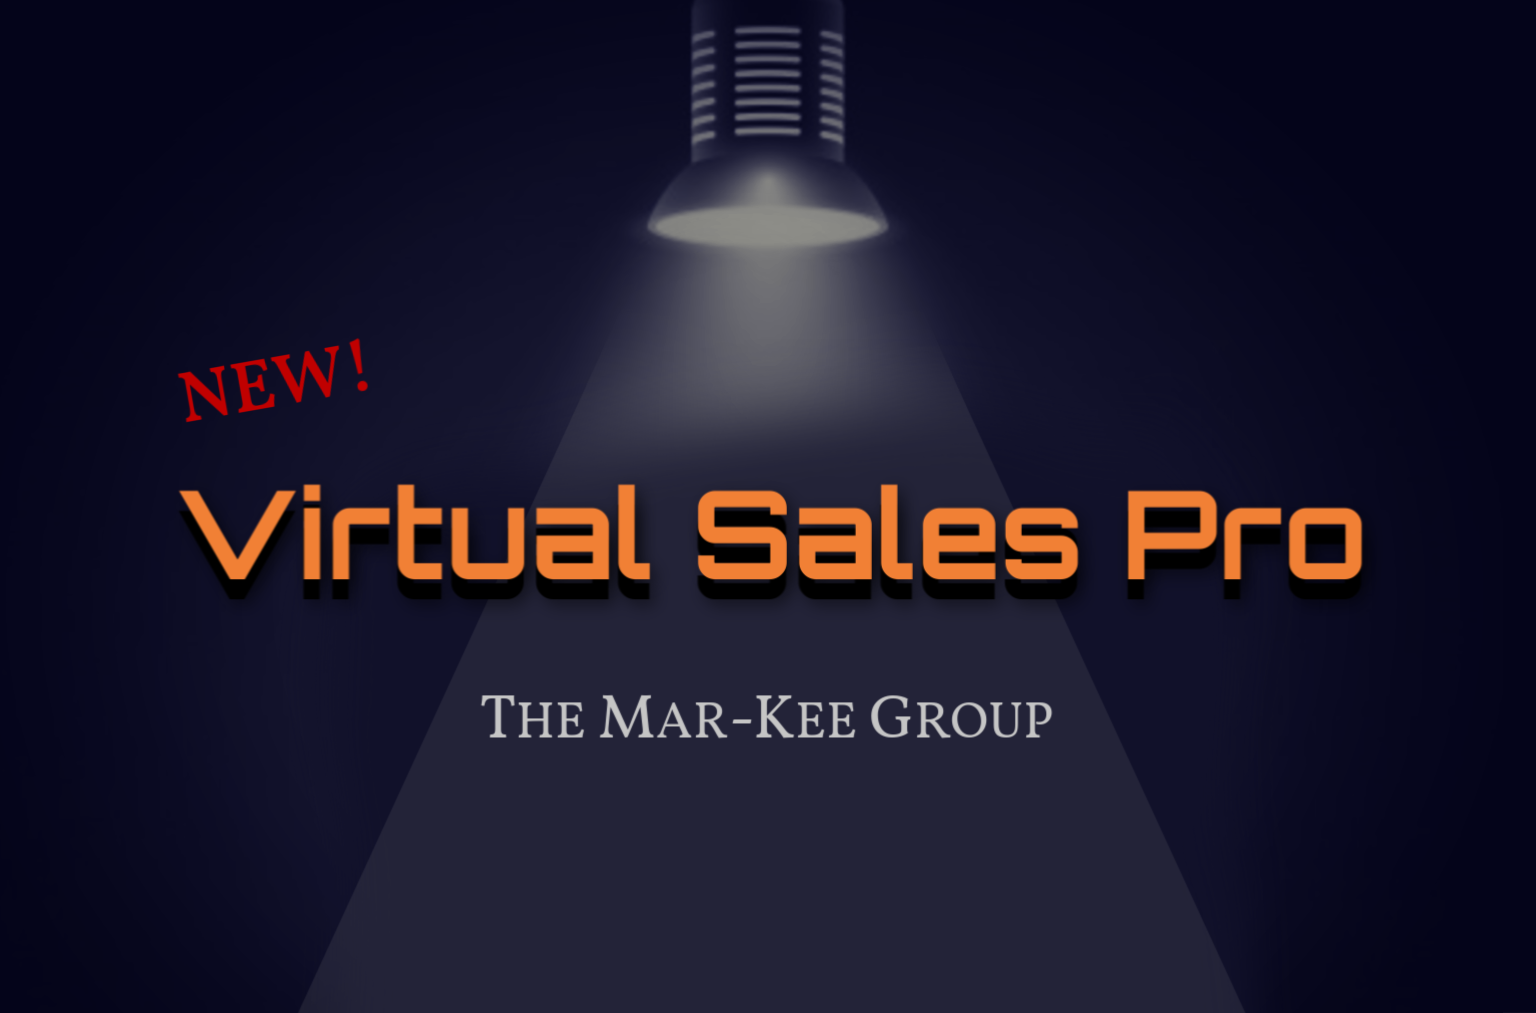 NEW Virtual Sales Pro by the MarKee Group